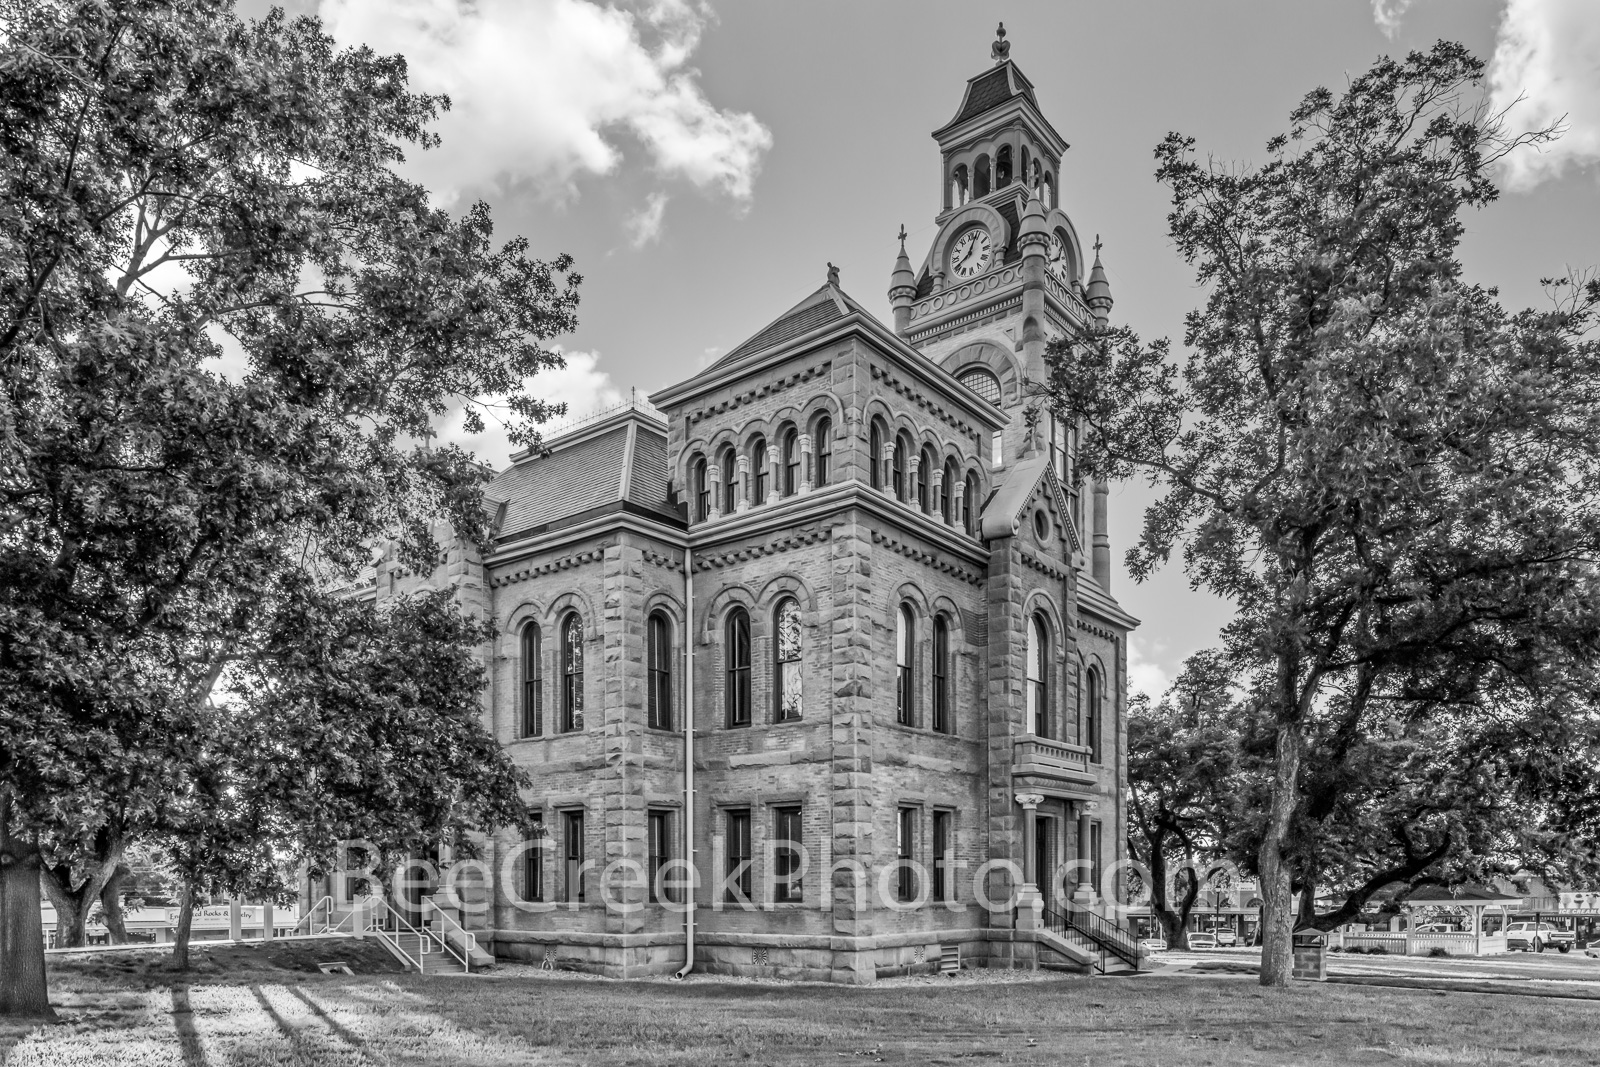 Llano County Courthouse Side View BW  - We captured this of the Llano Country Courthouse in the late afternoon in black and white...